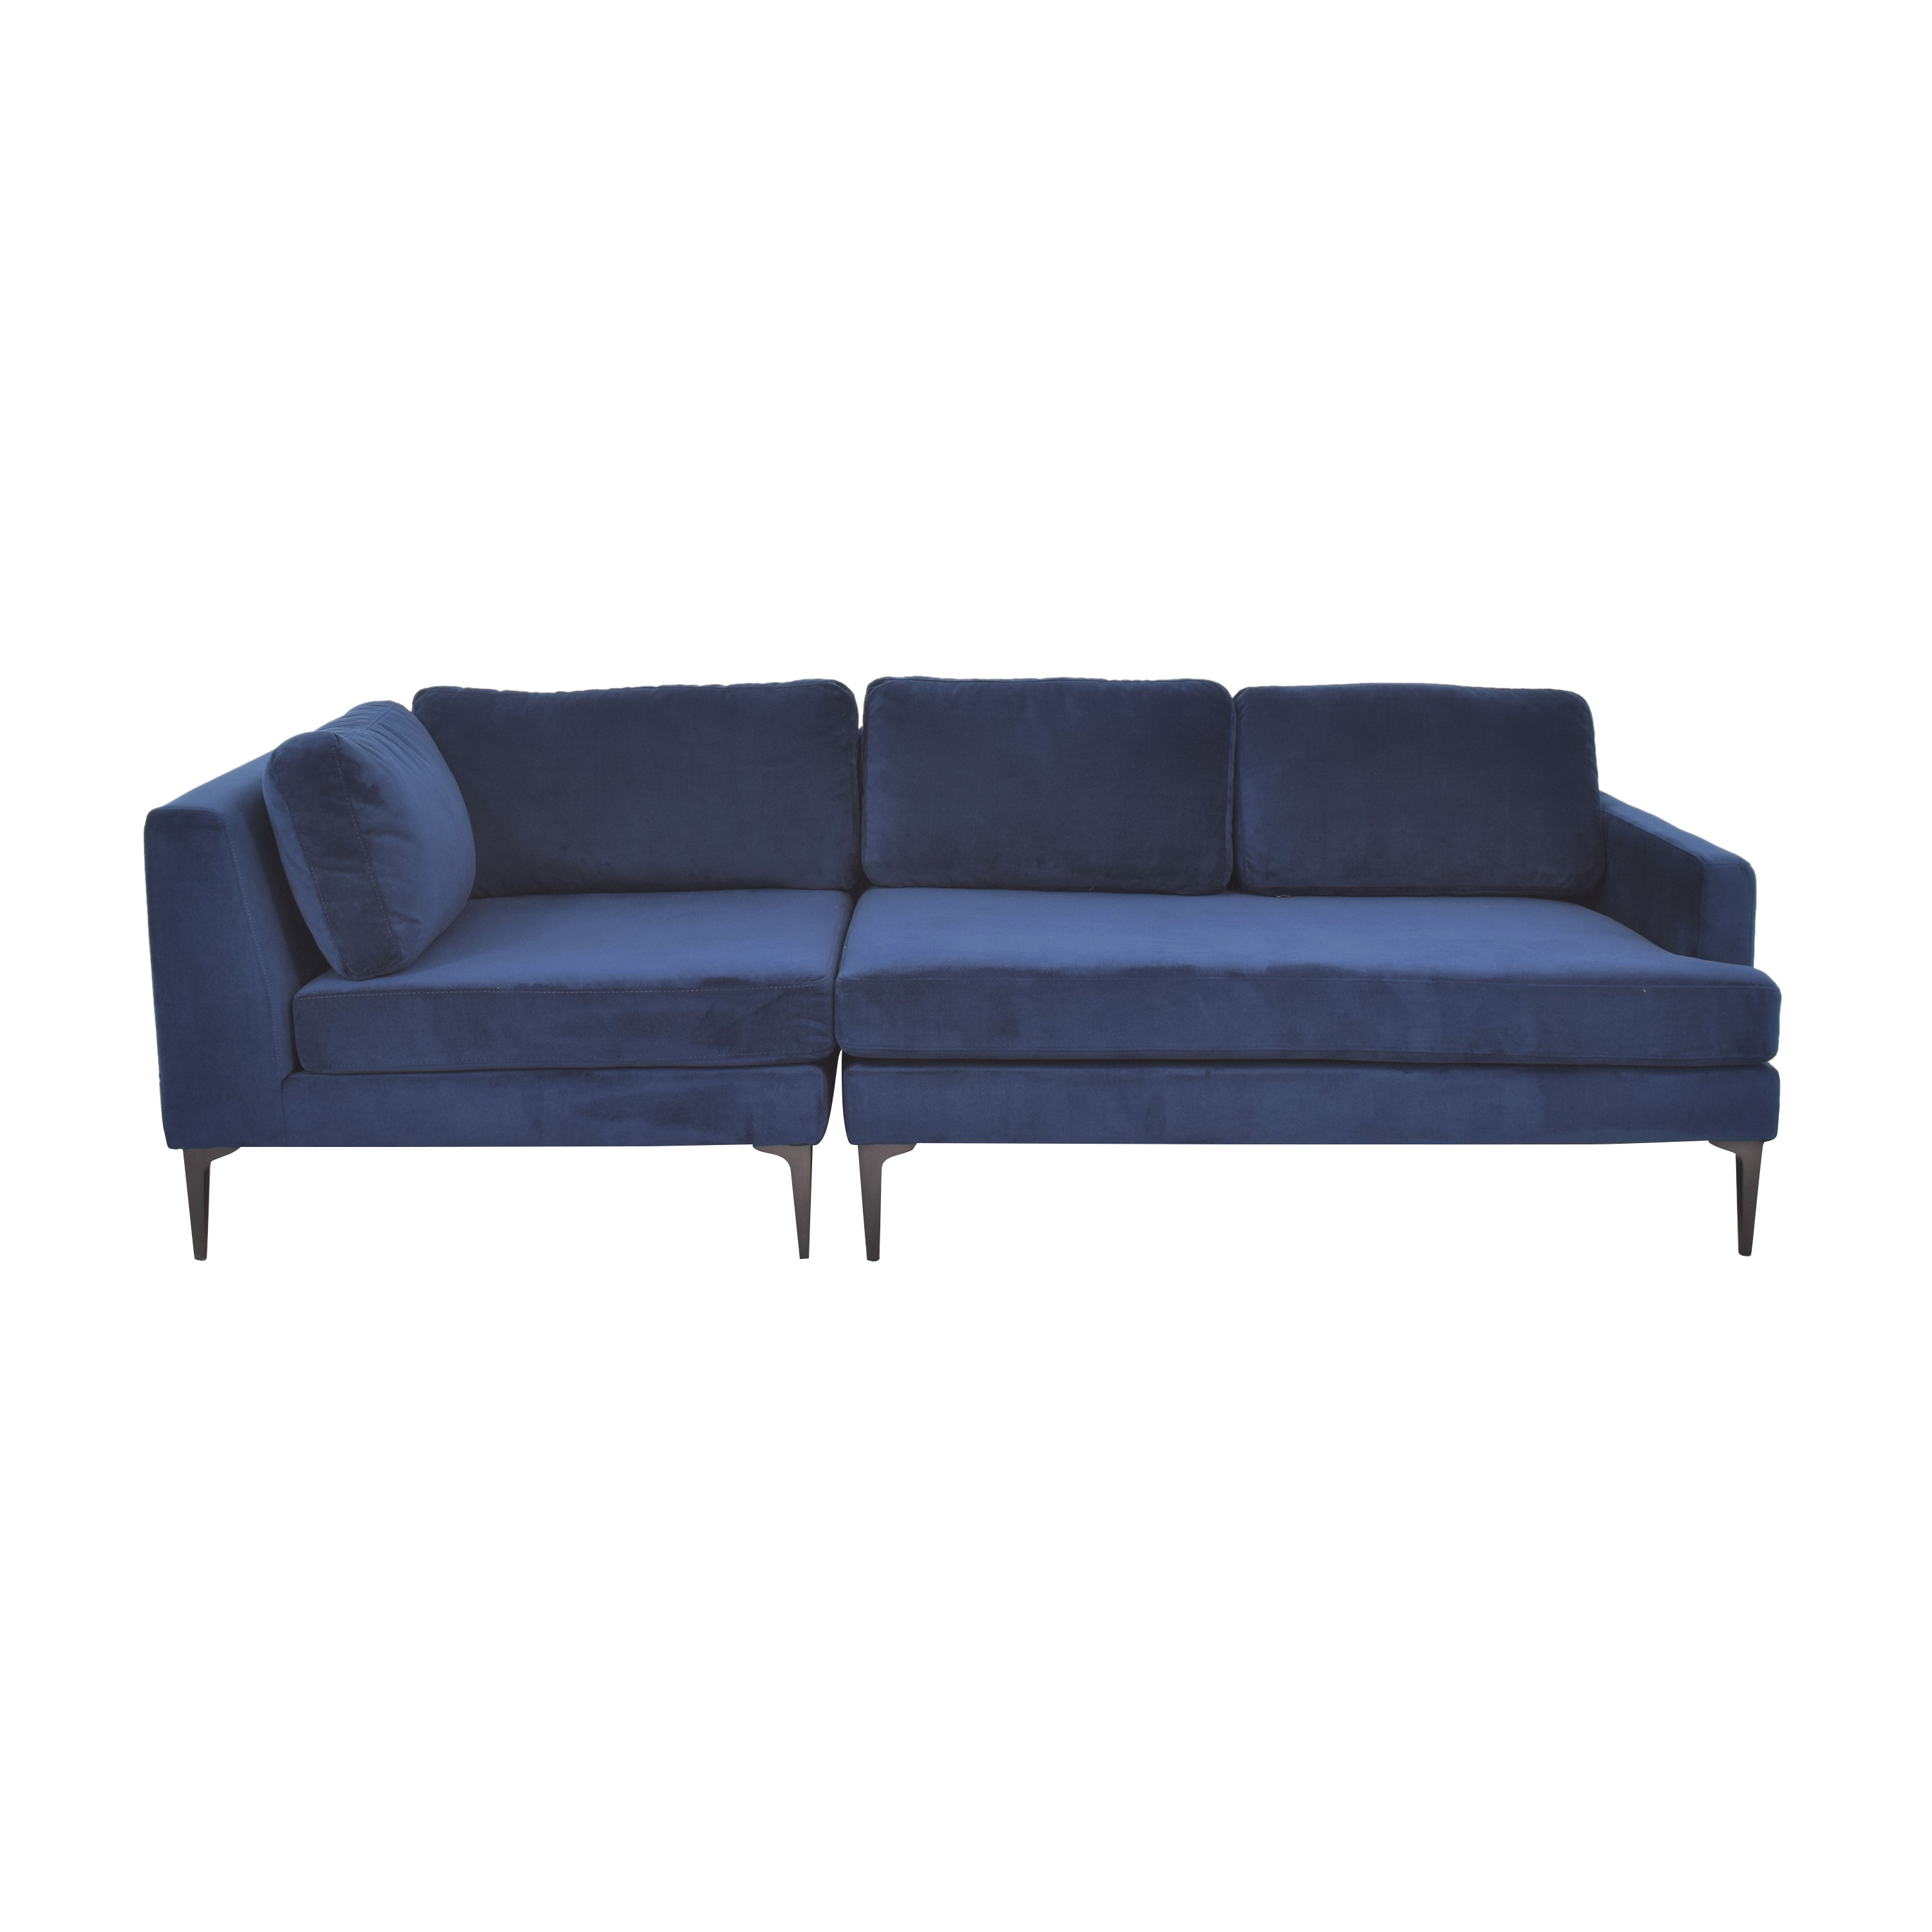 West Elm West Elm Andes 3-Piece Chaise Sectional used